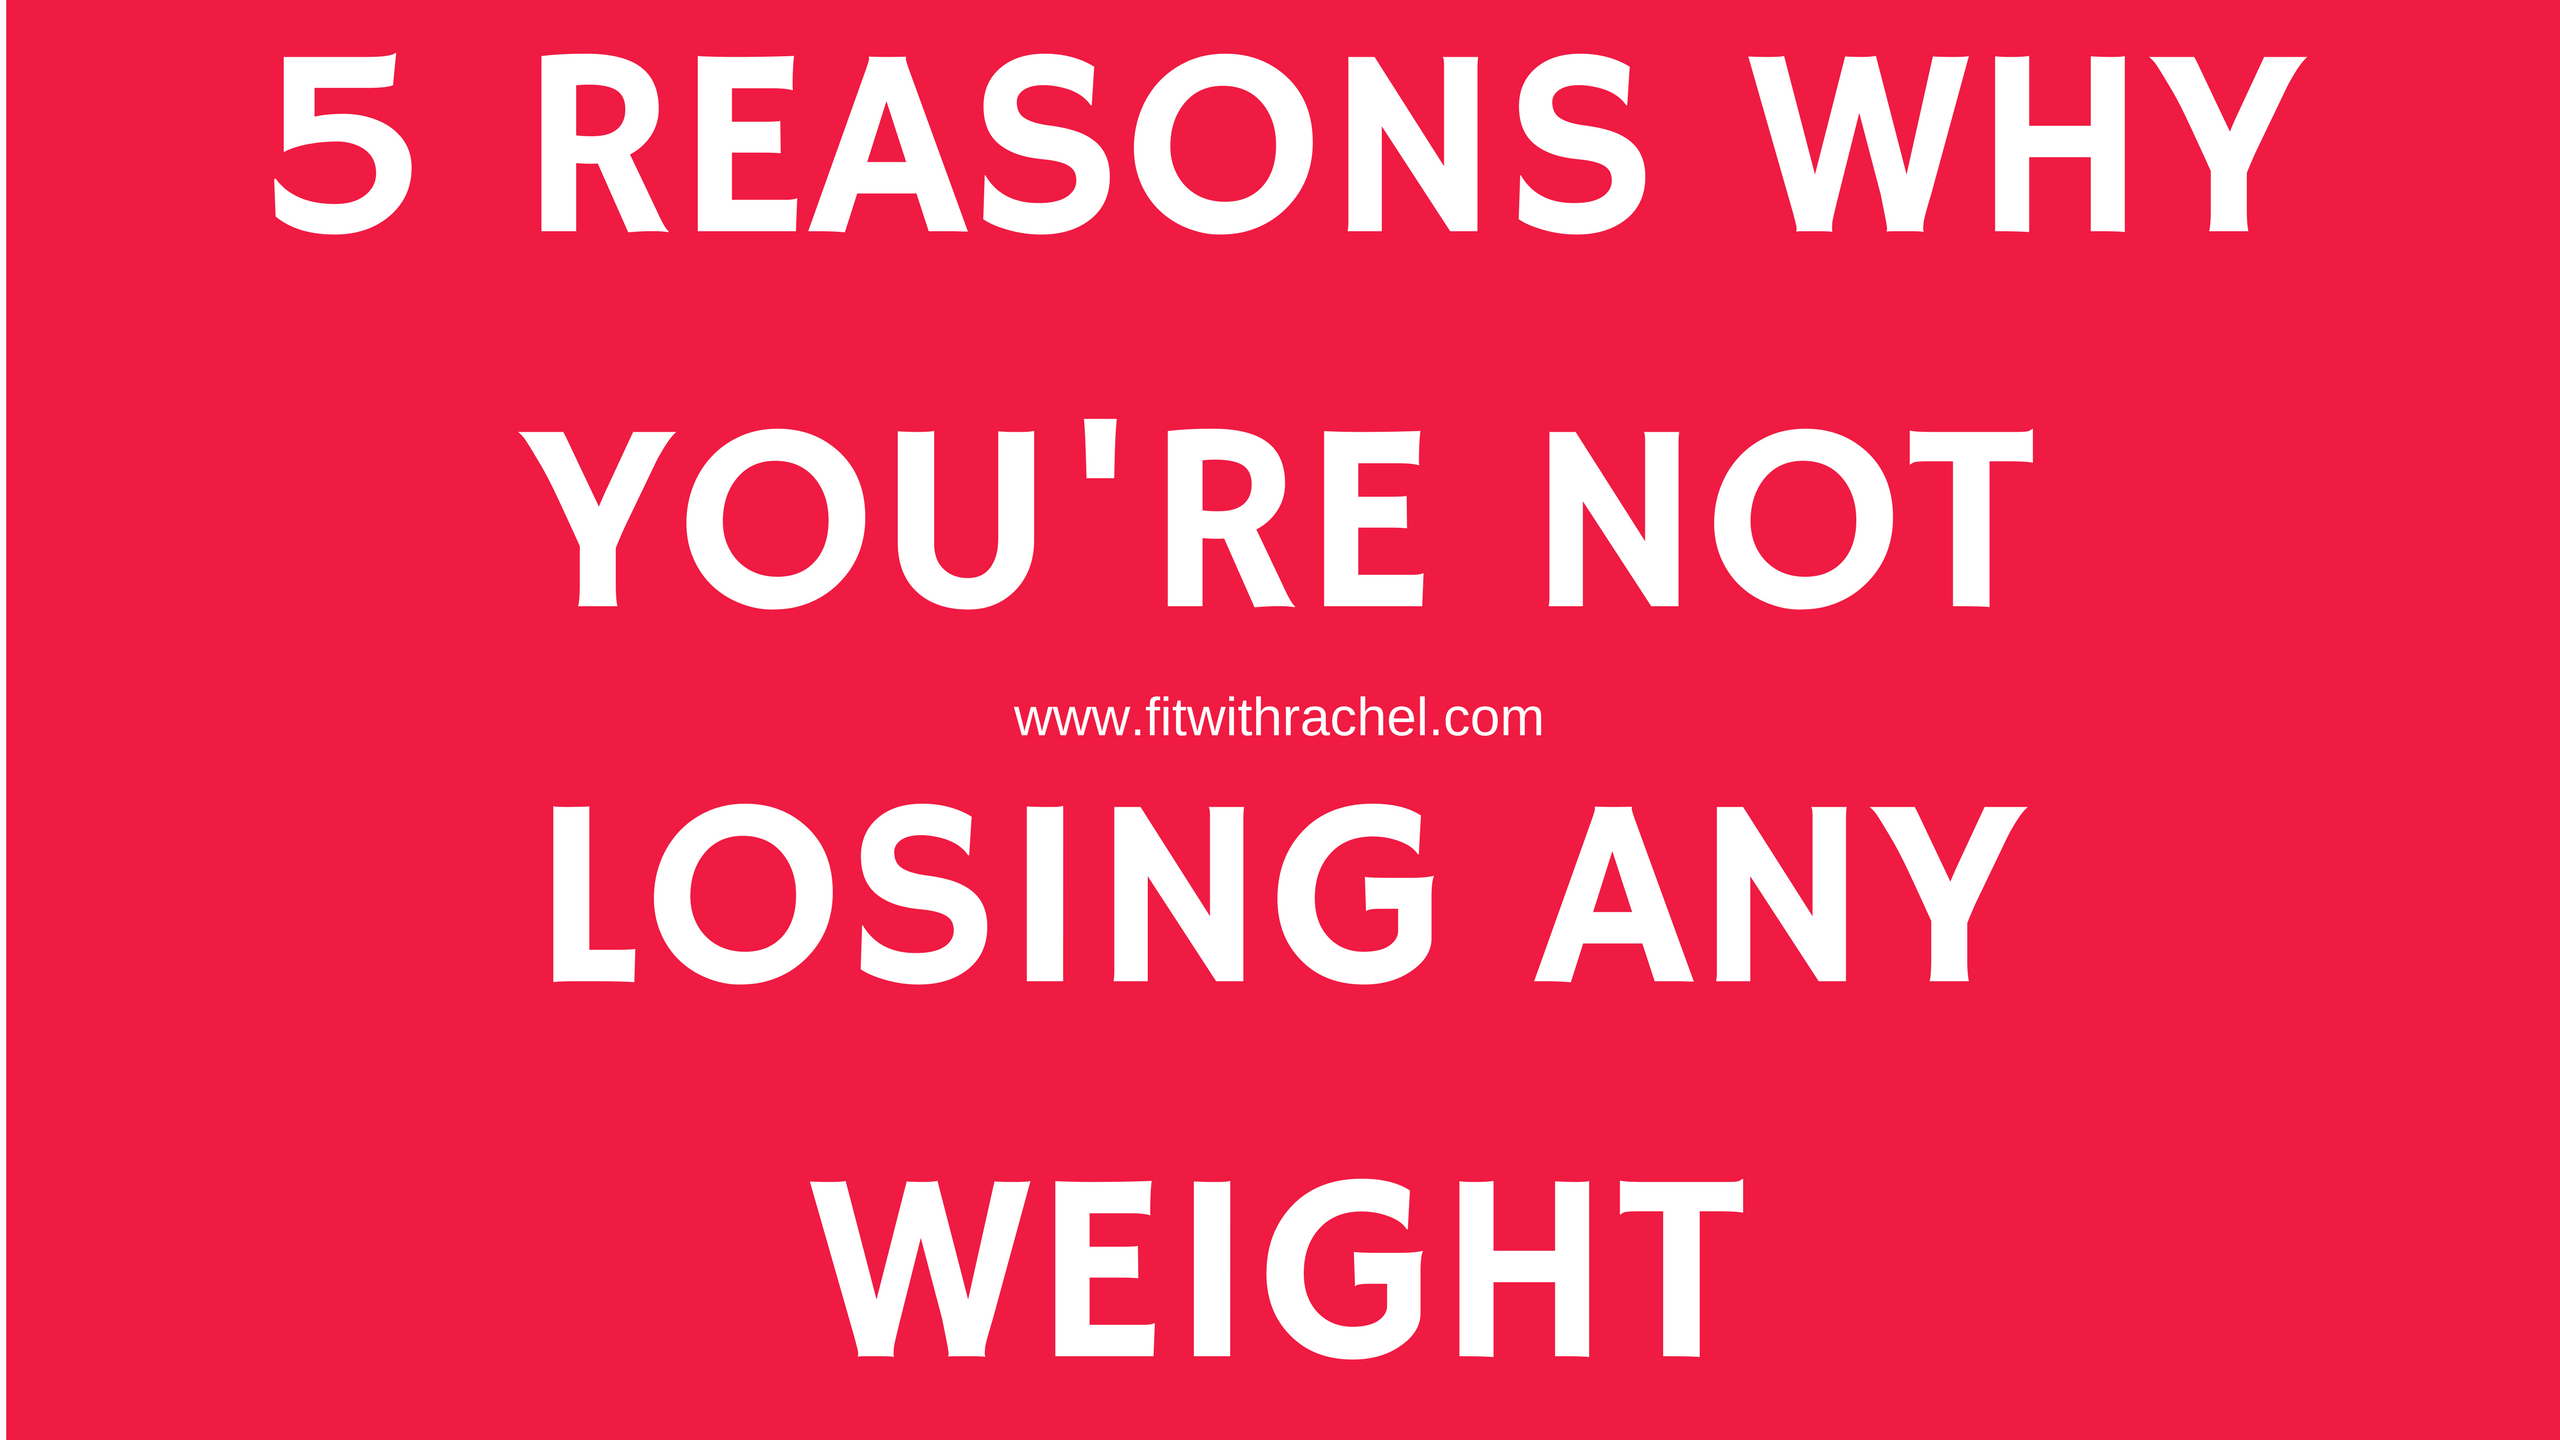 5 Reasons Why You're Not Losing Any Weight